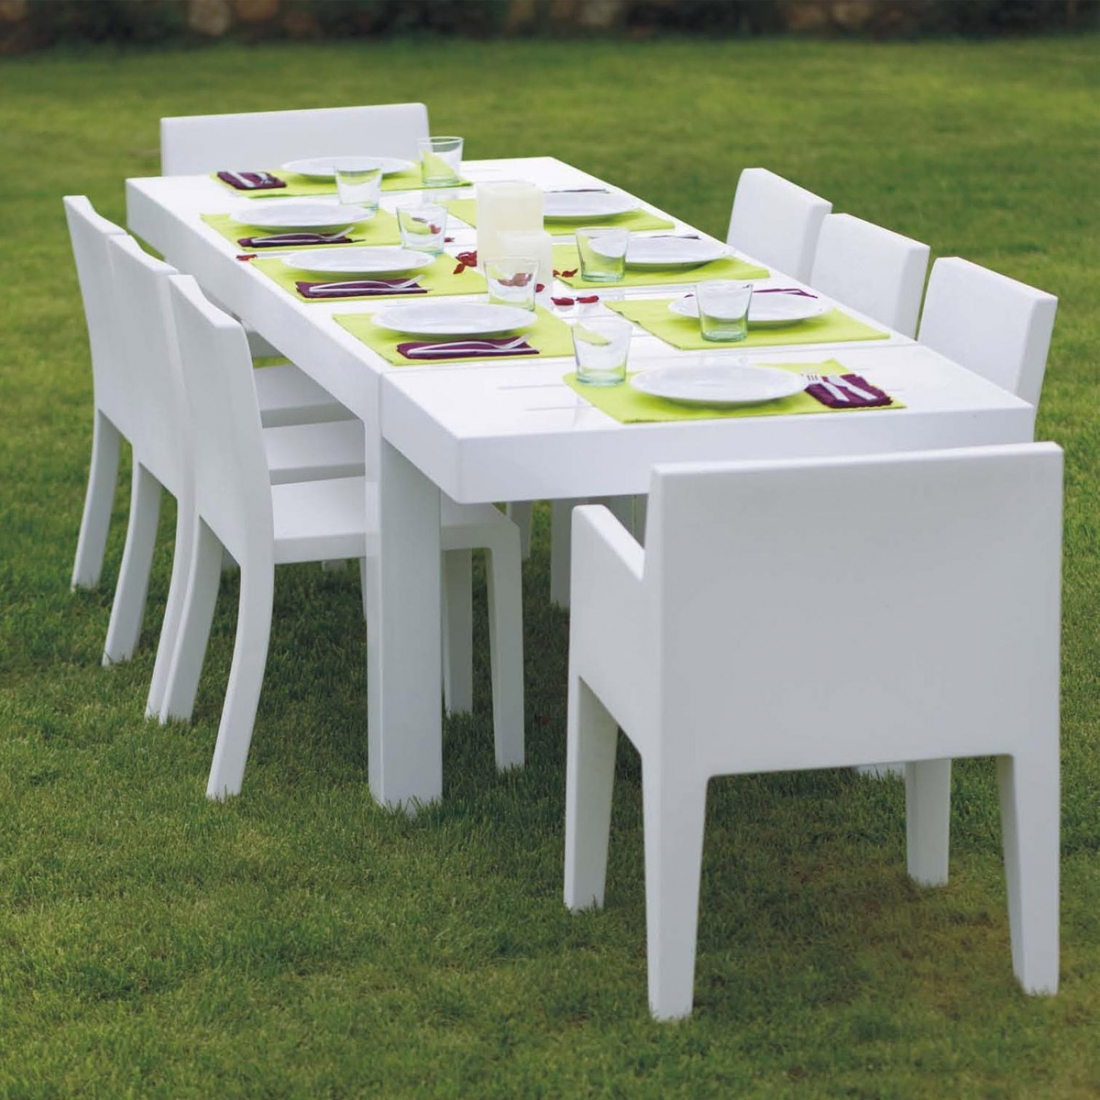 Table de jardin design 10 personnes jut par vondom for Jardin exterieur design